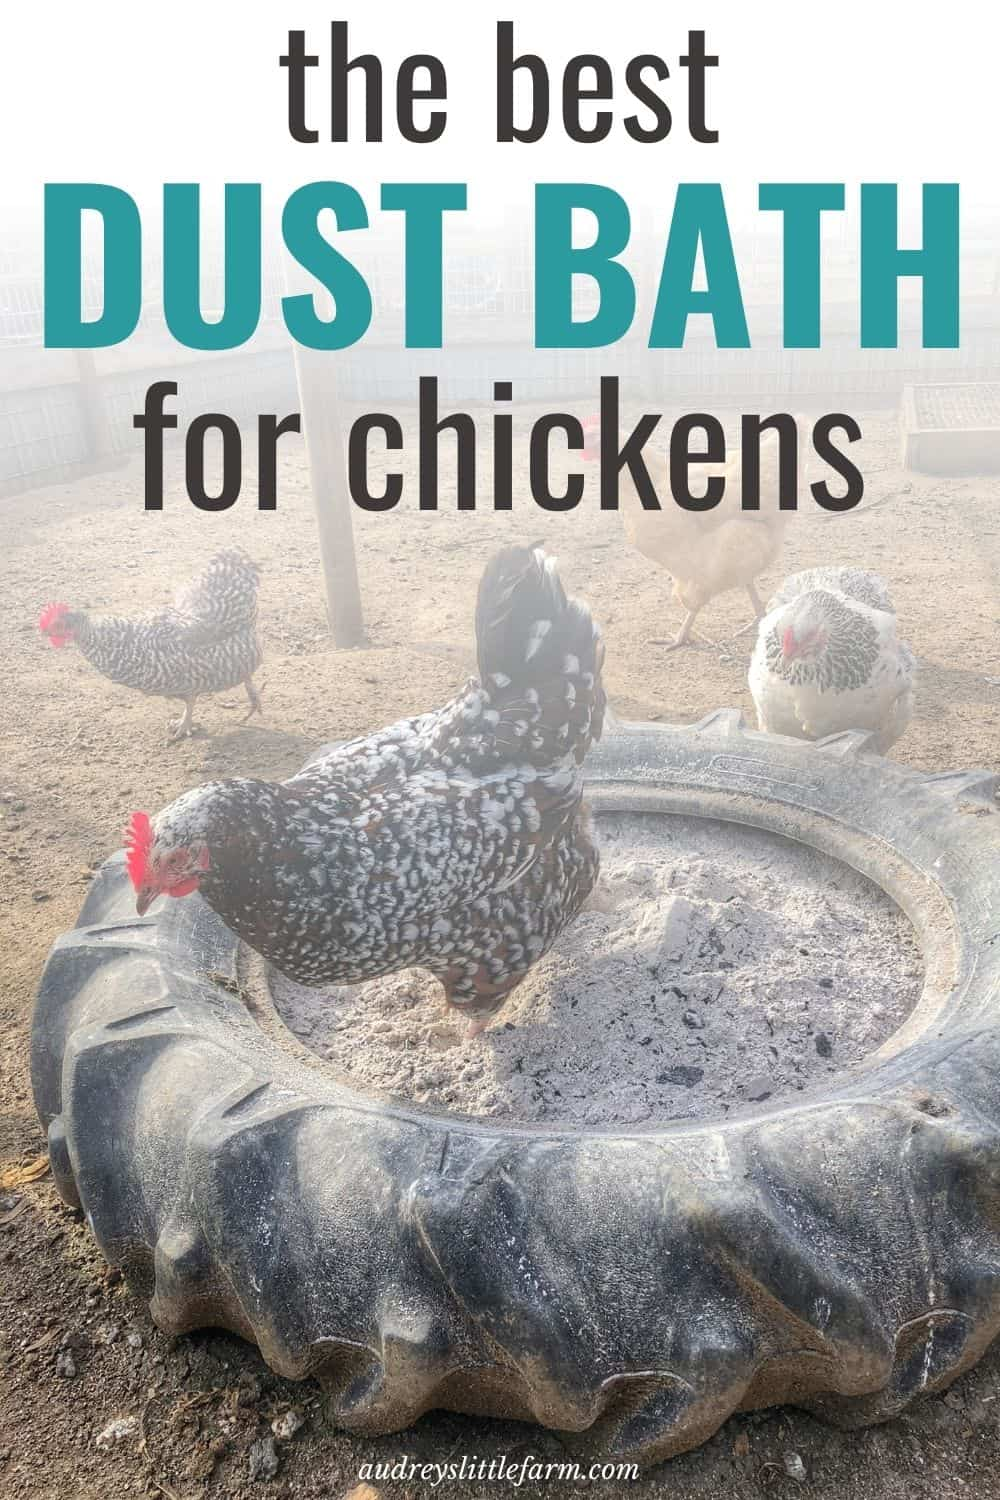 A Chickens Dust Bath in a Tractor Tire